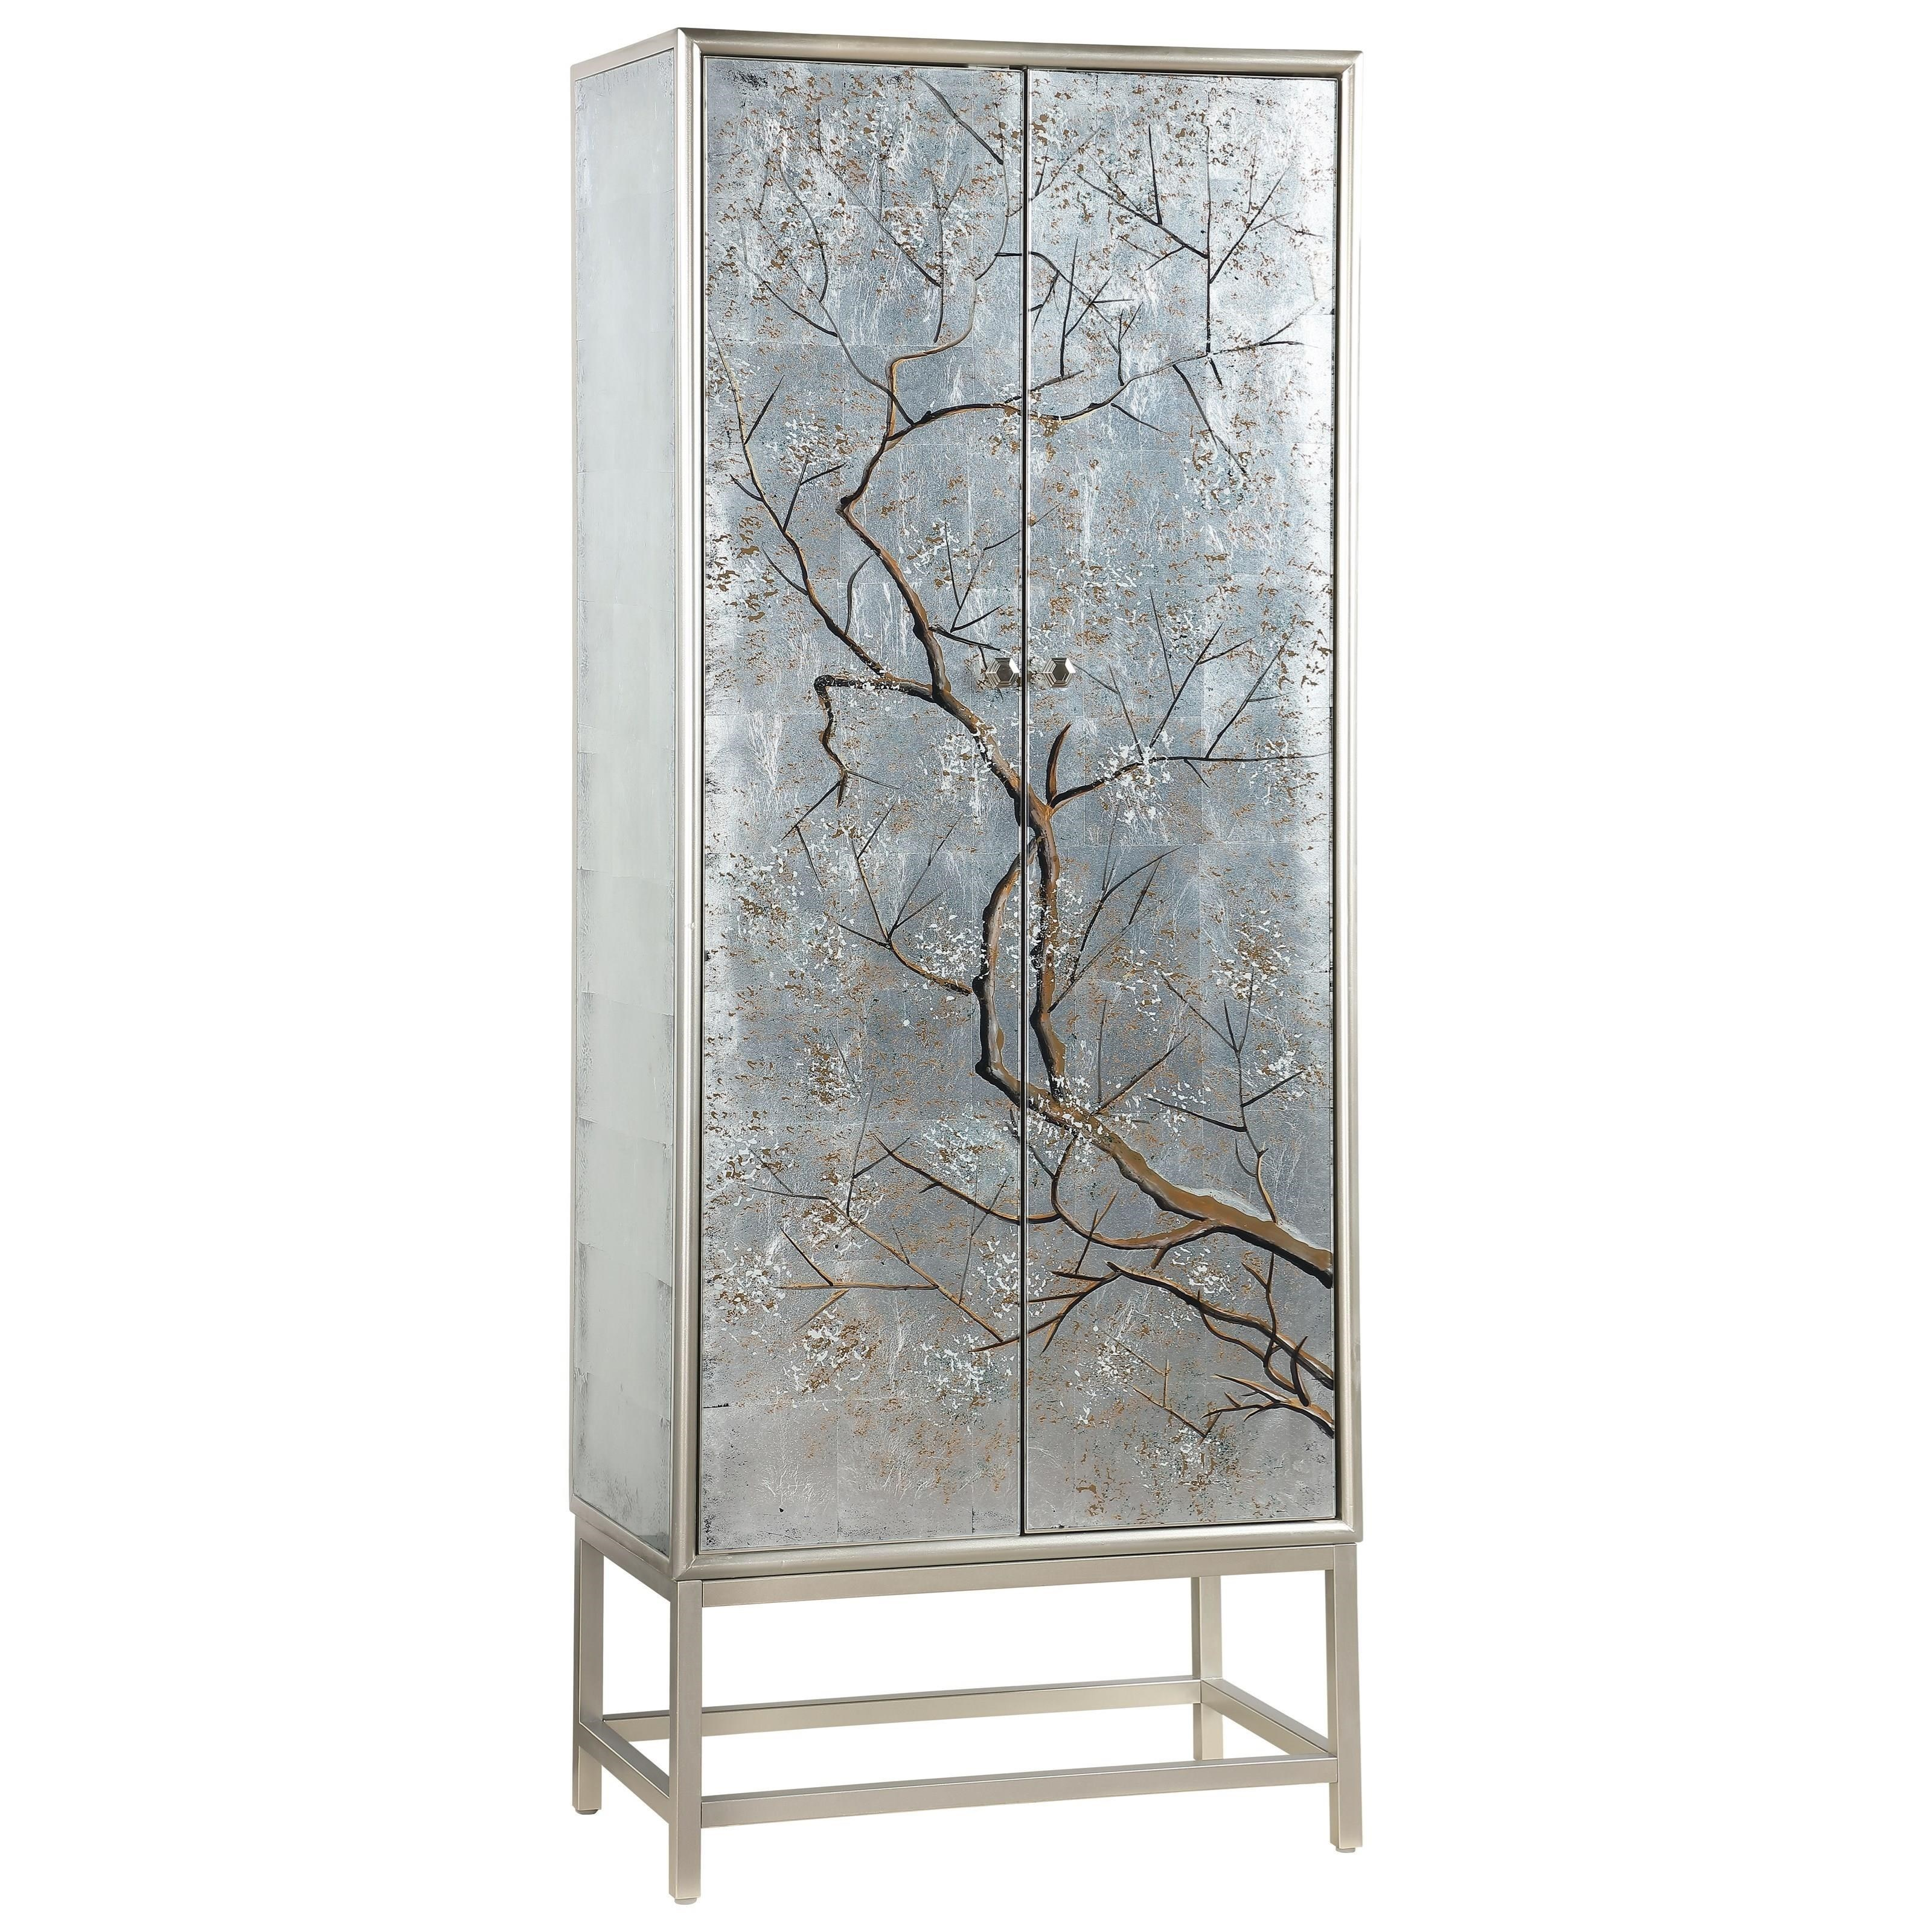 40270 2-Door Wine Cabinet by Coast to Coast Imports at Westrich Furniture & Appliances